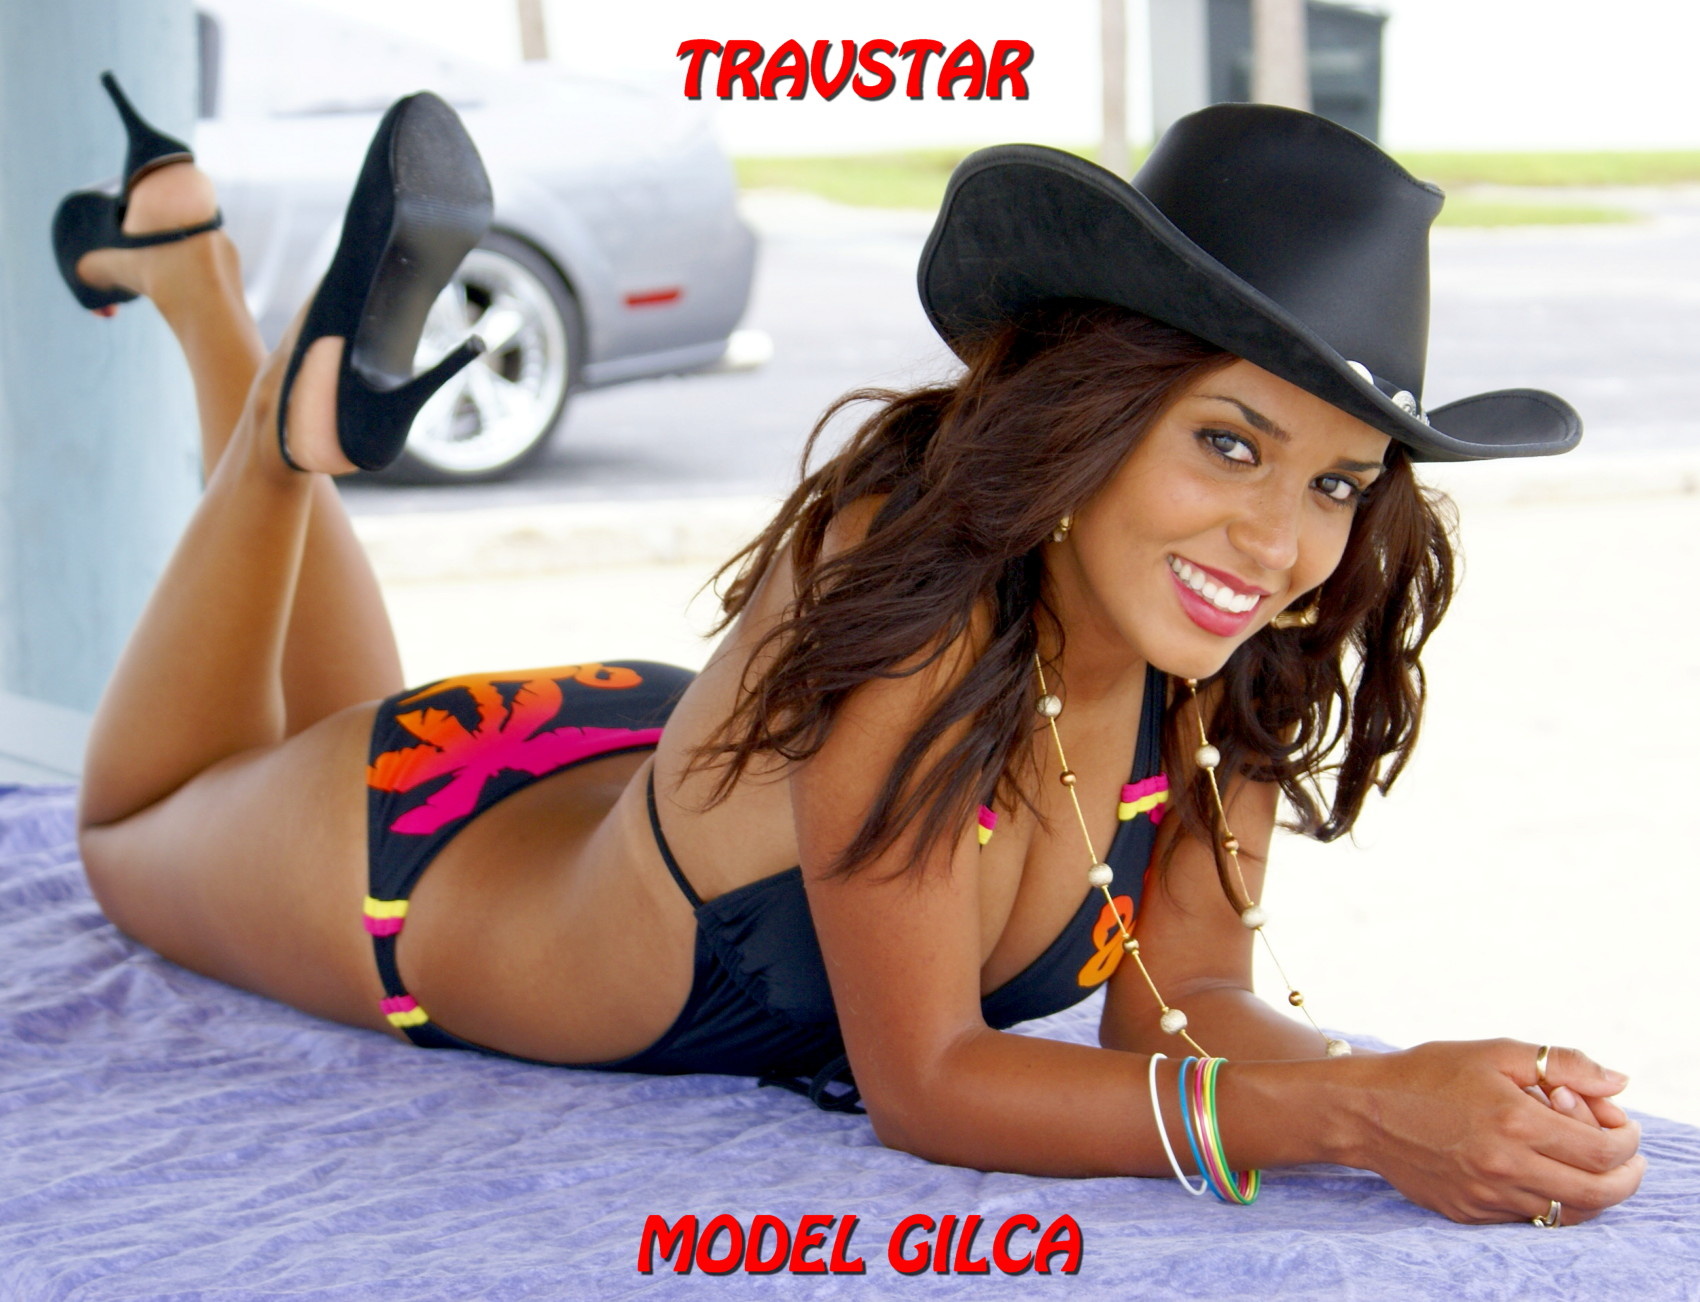 TRAVSTAR~GLAMOUR~PHOTOGRAPHY - AWESOME LATINA MODEL GILCA